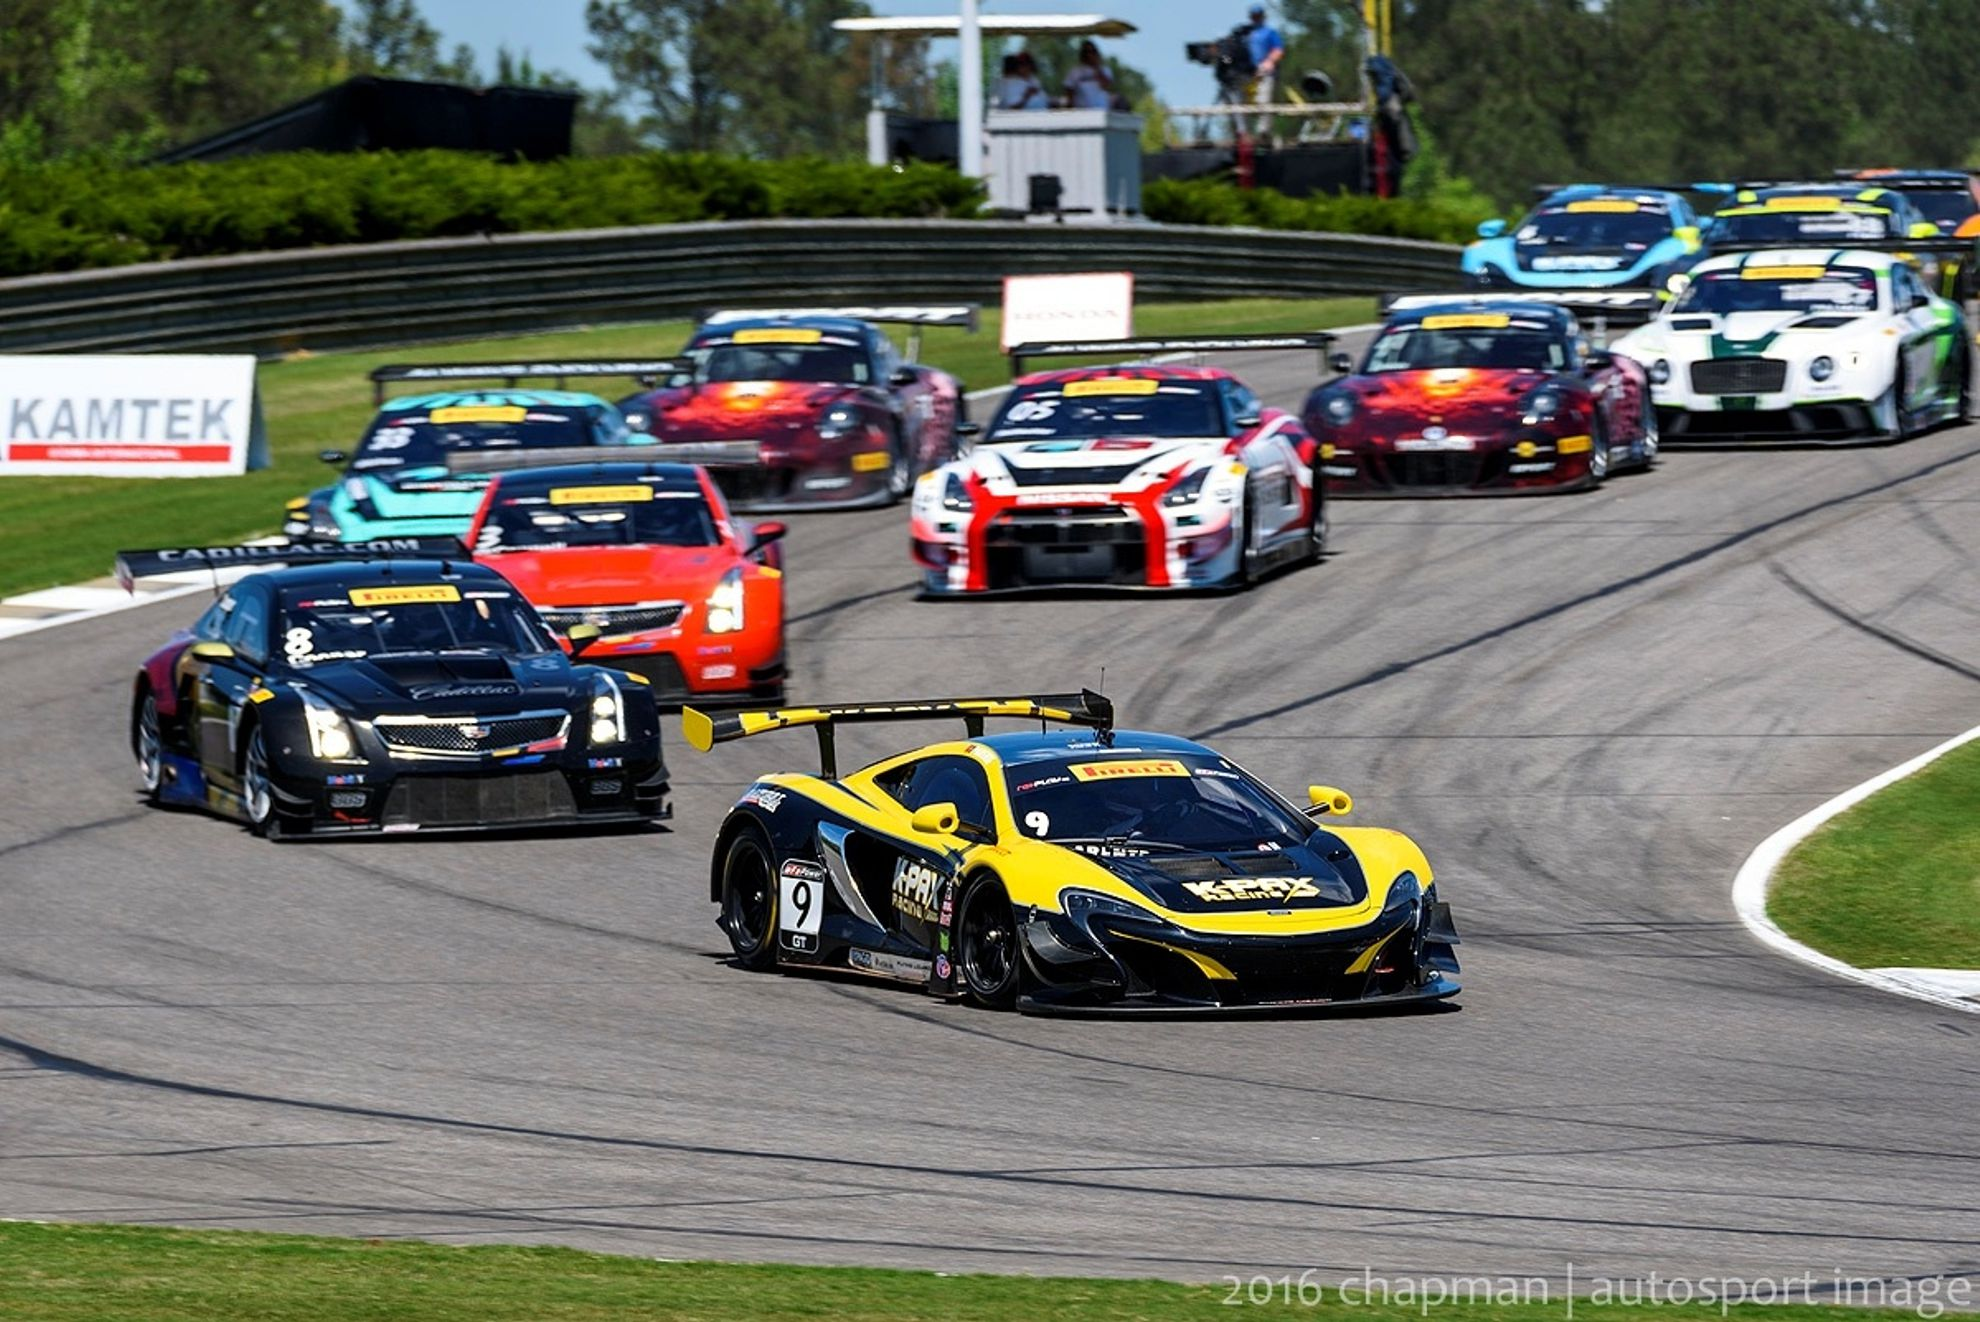 mclaren 650s gt3 takes wins in three countries